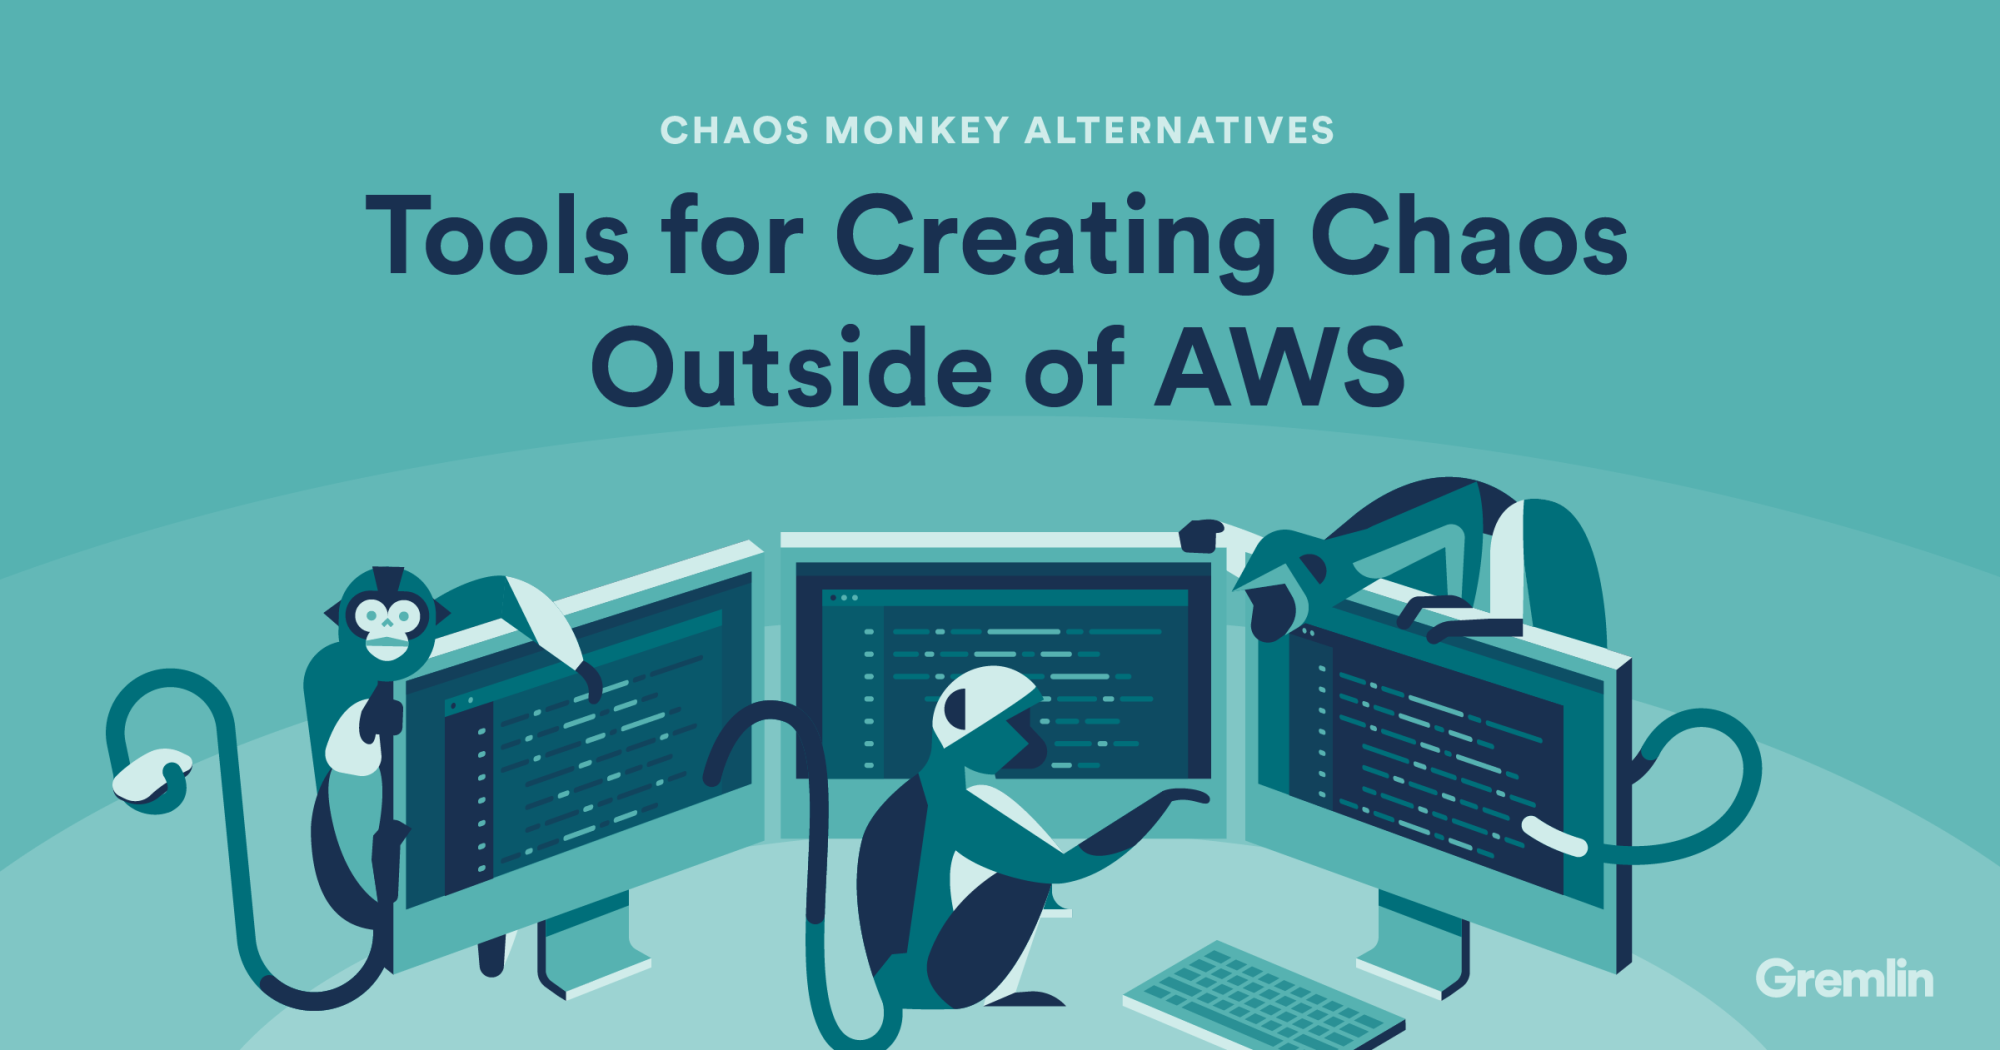 Chaos Monkey Alternatives for Docker Containers